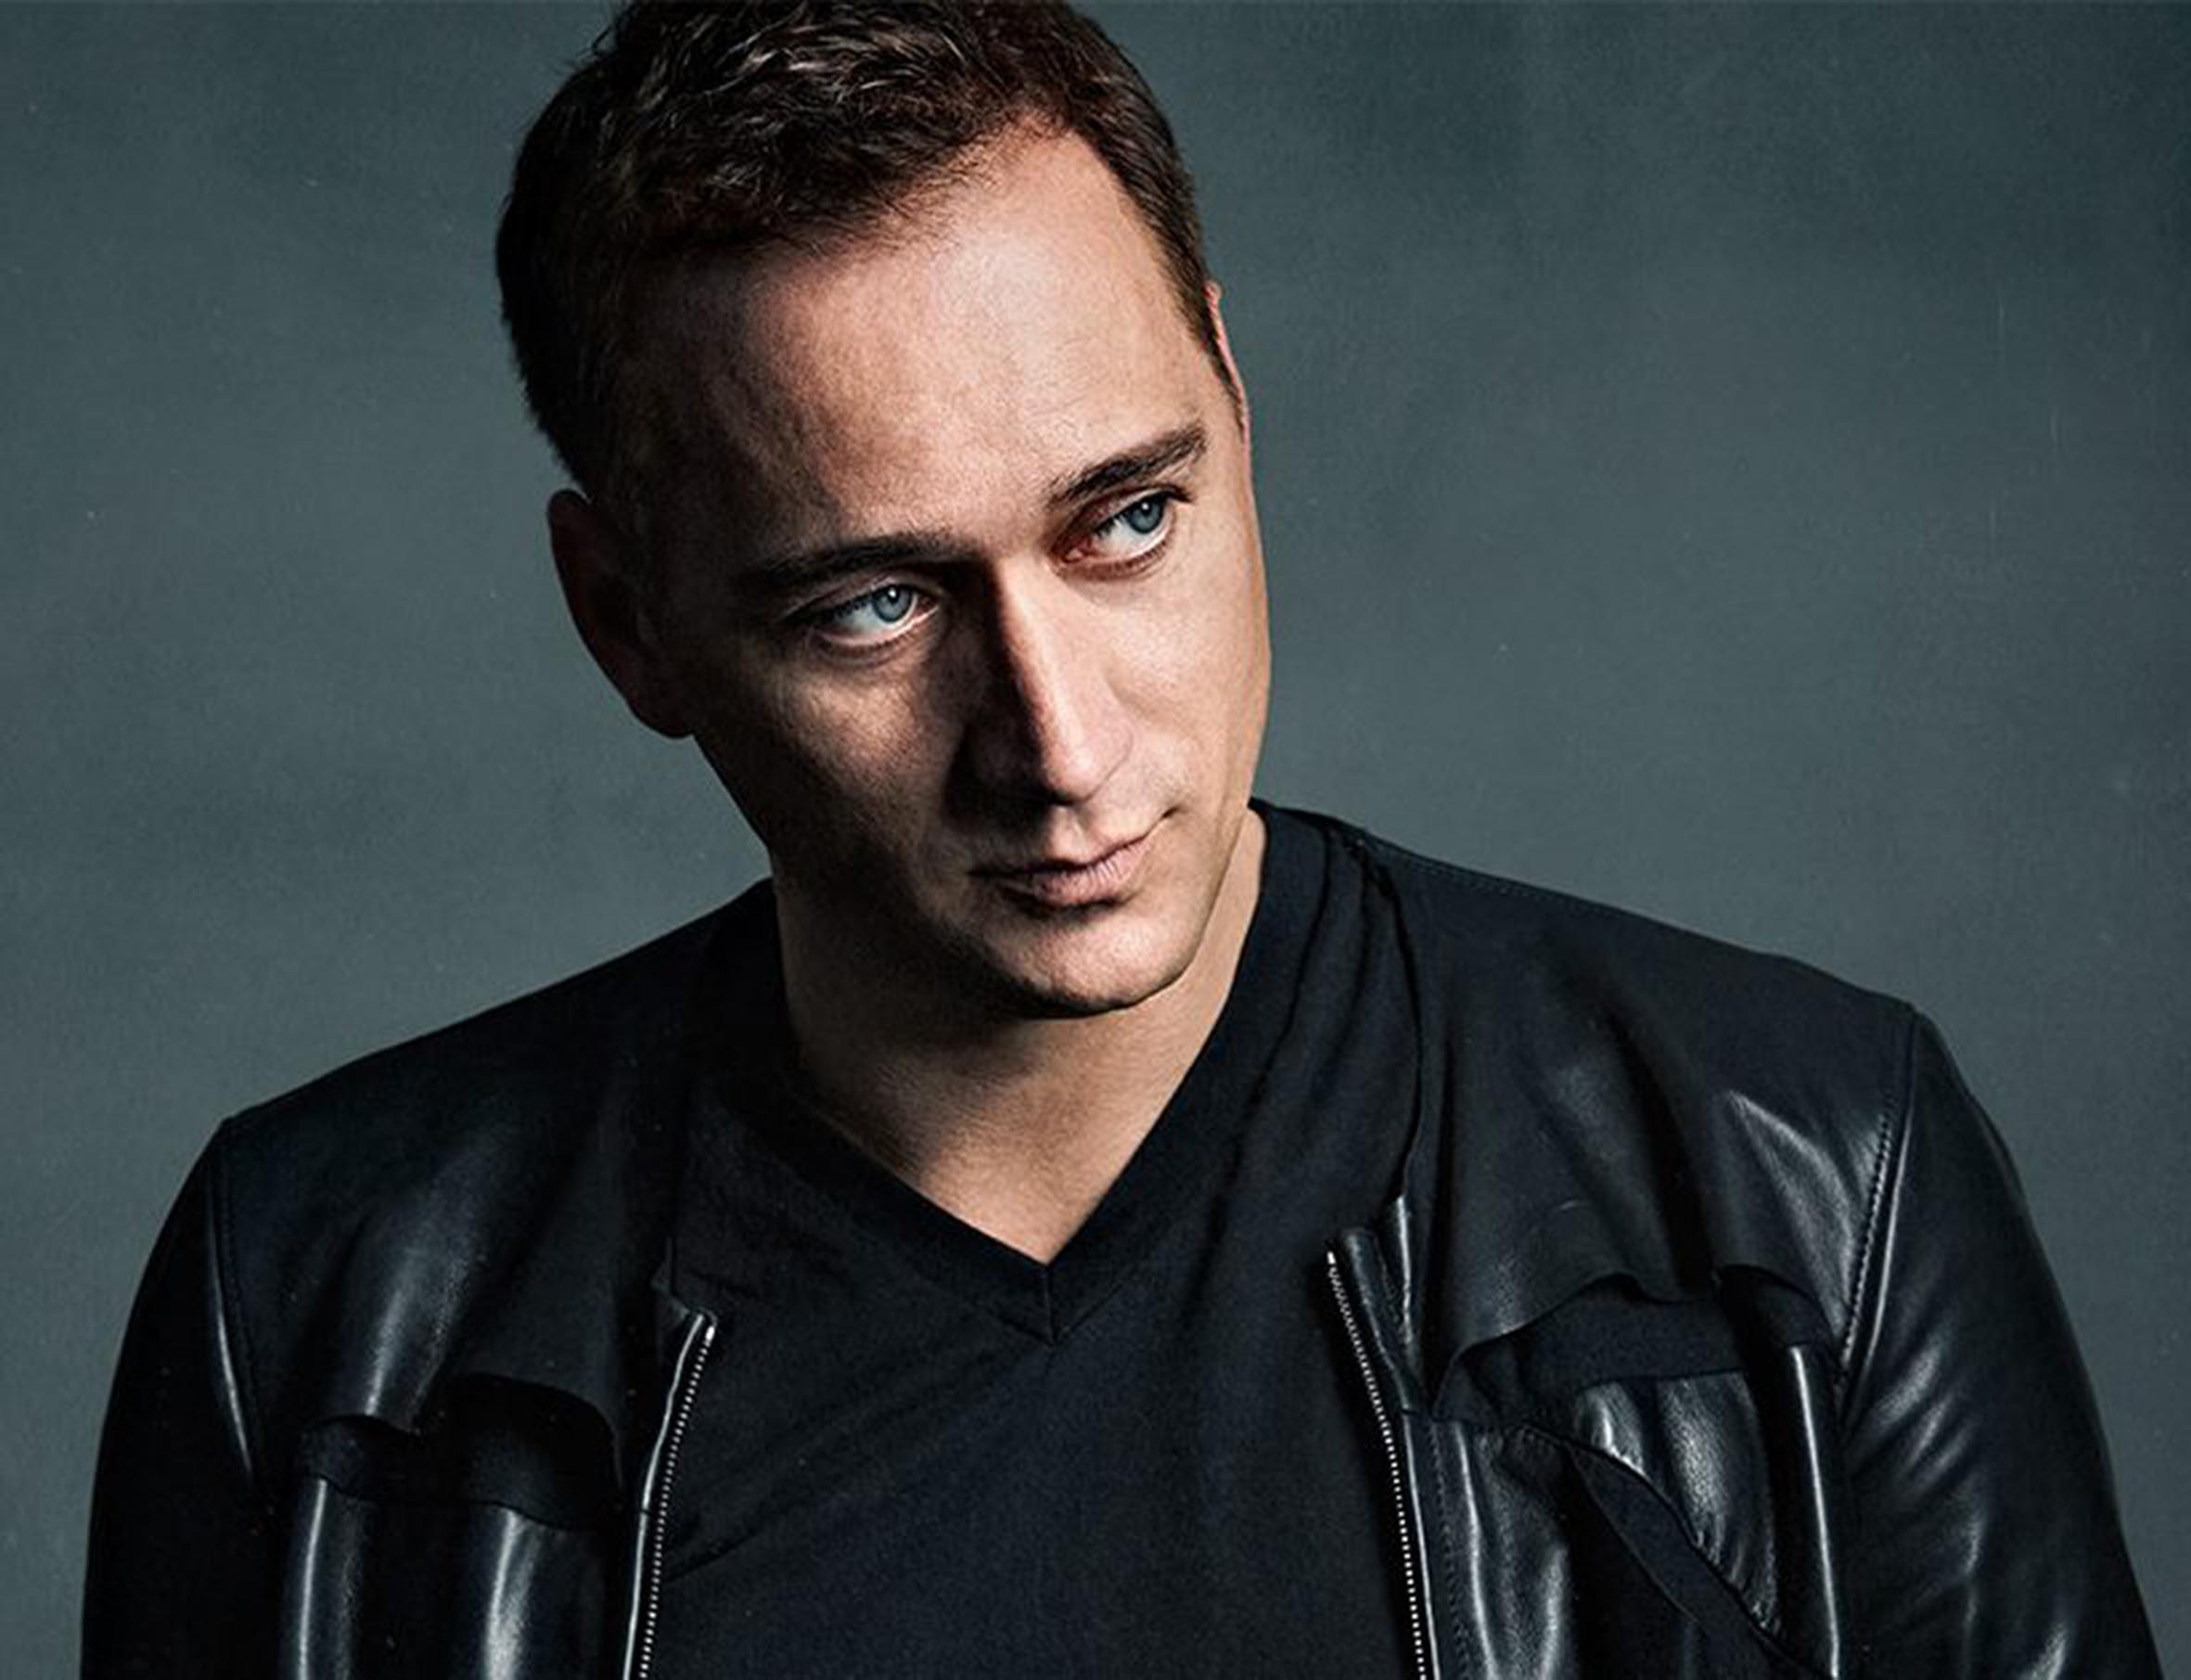 Grammy award-winning German DJ Paul van Dyk will be performing in Northern Ireland's newest live entertainment venue, Lanyon Hall in Cookstown, as part of its 'Grand Opening Weekend' on Friday December 11. Lanyon Hall is the latest venture from fast-growing leisure group 1 Oak Leisure Ireland Ltd and will see one of the province's best-loved nightclubs Clubland on Molesworth Street transformed into a state-of-the-art multi-purpose live arena, inspired by similar venues in New York and Nashville.  An initial investment of £1M in the new venue and the creation of 25 full and part-time jobs will provide a real boost for the Mid-Ulster region.